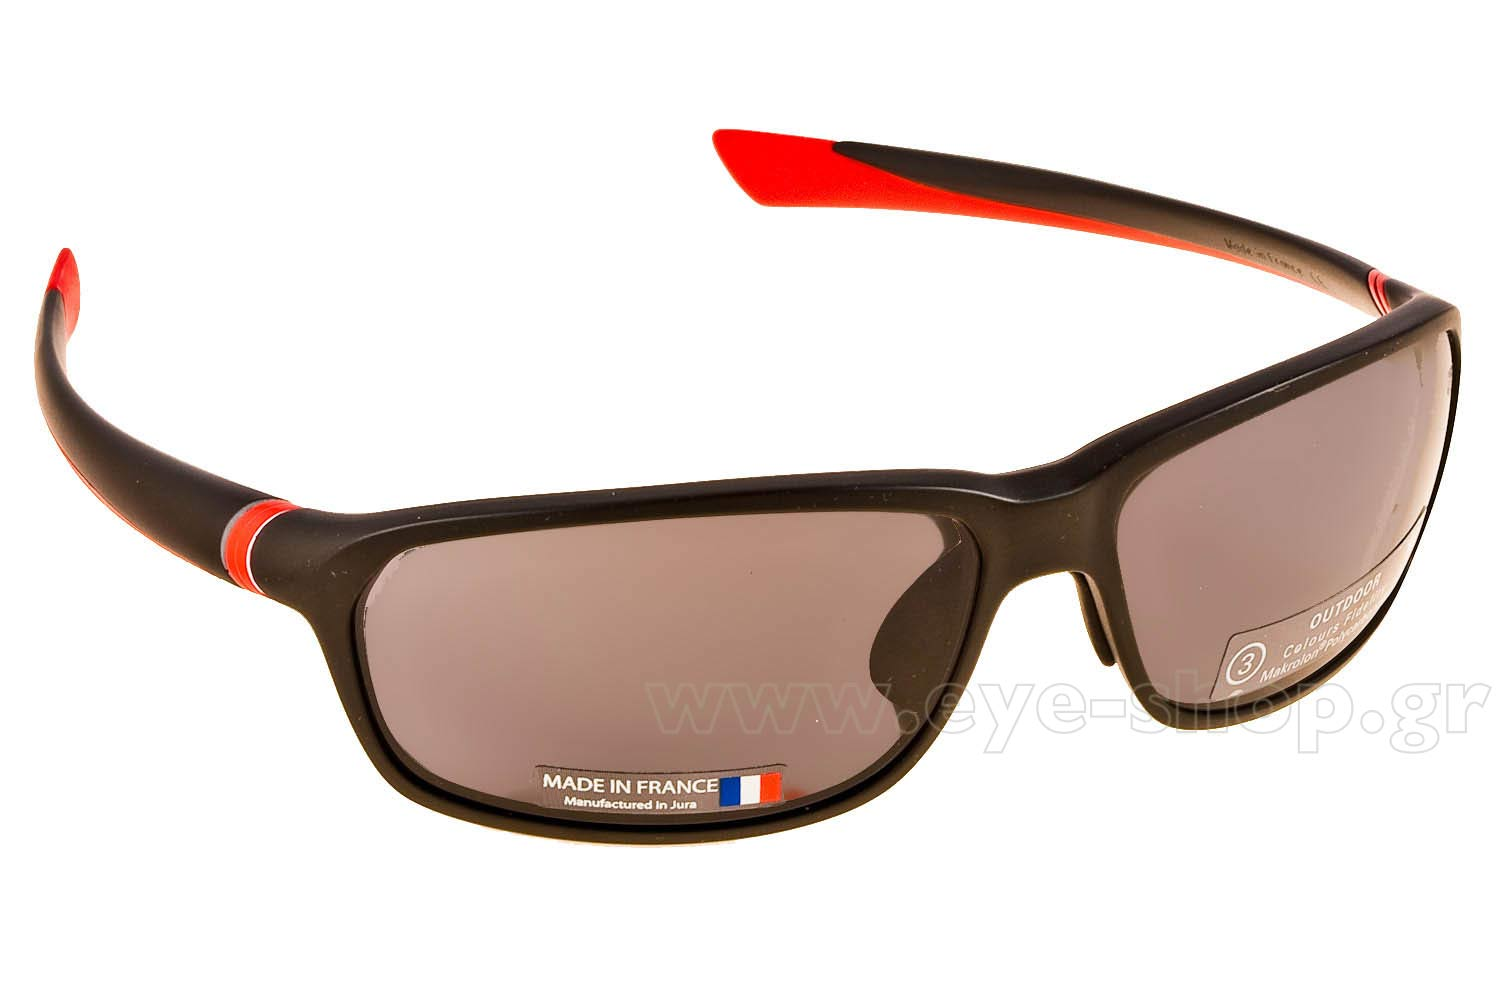 75f9d89f7bed5 Tag Huer Color Changeing Sun Glasses